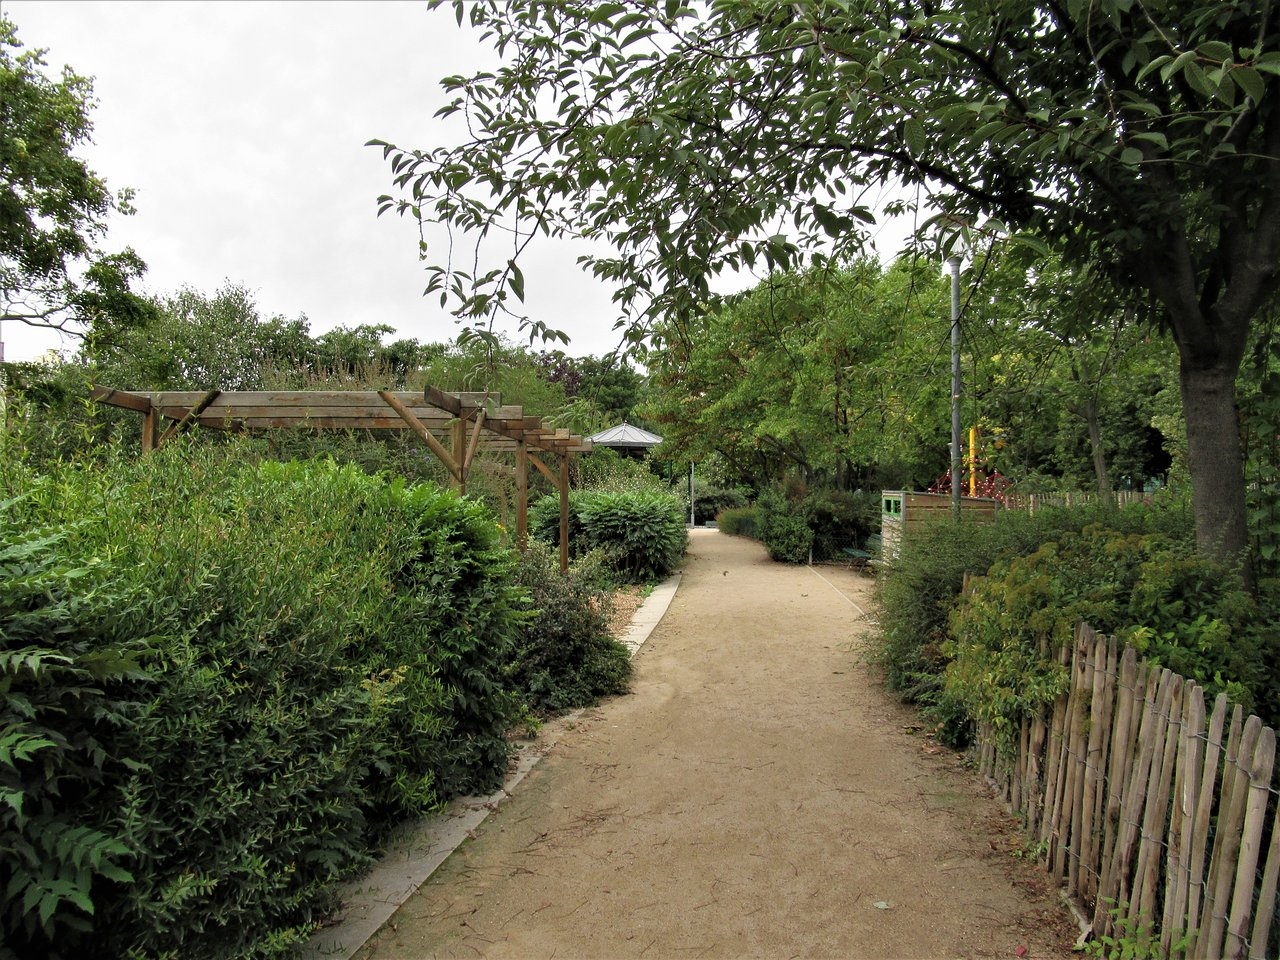 Blatte Jardin Luxe Jardin Villemin Paris 2020 All You Need to Know before